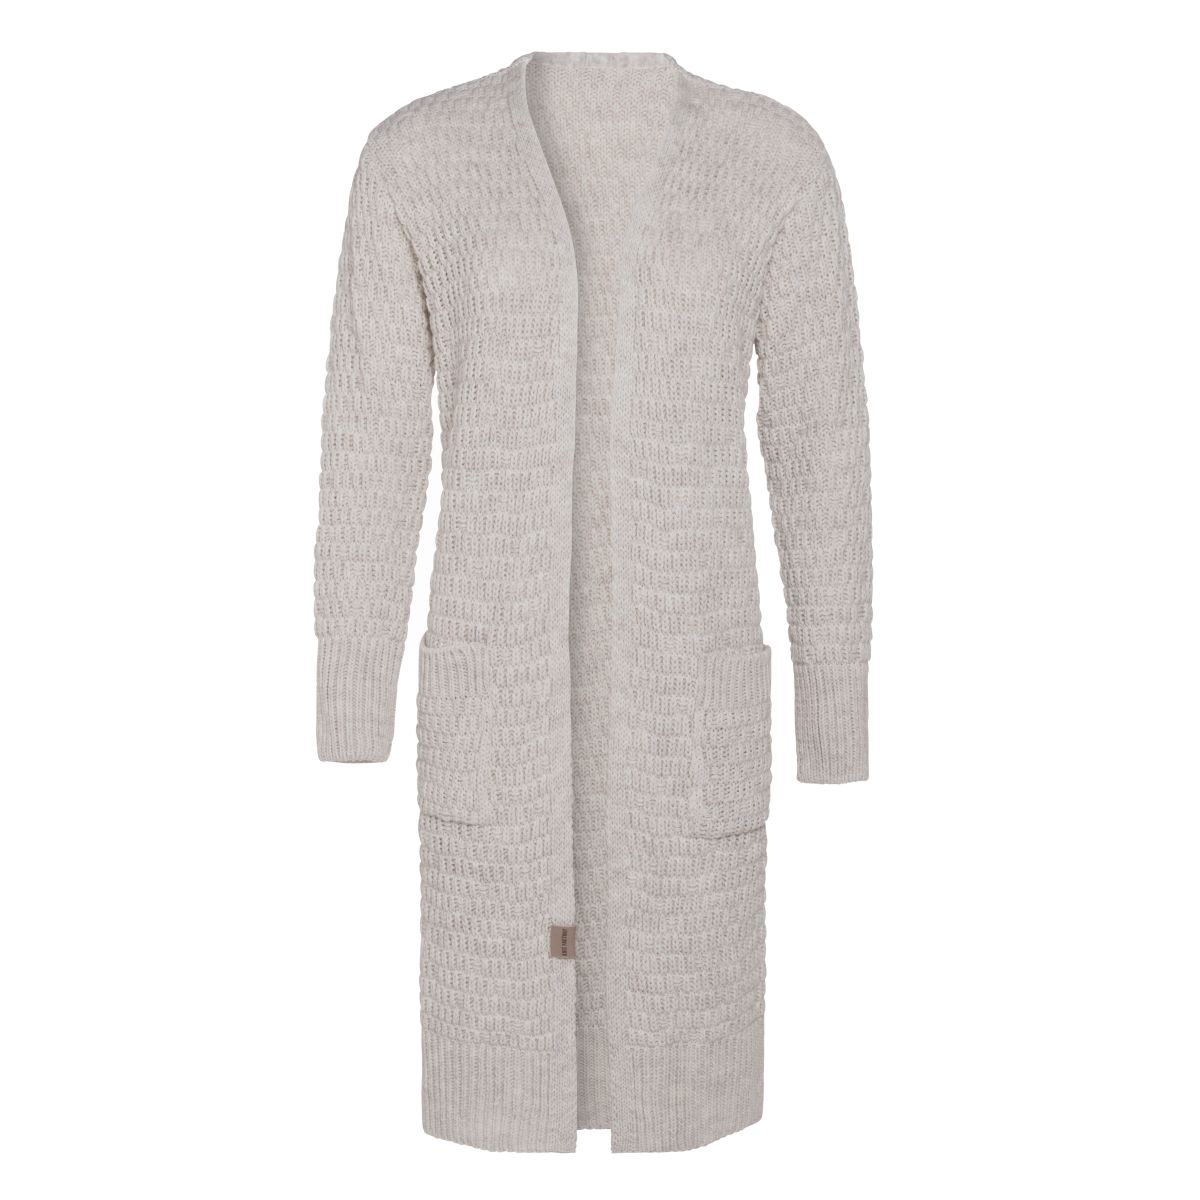 jaida long knitted cardigan beige 4042 with side pockets